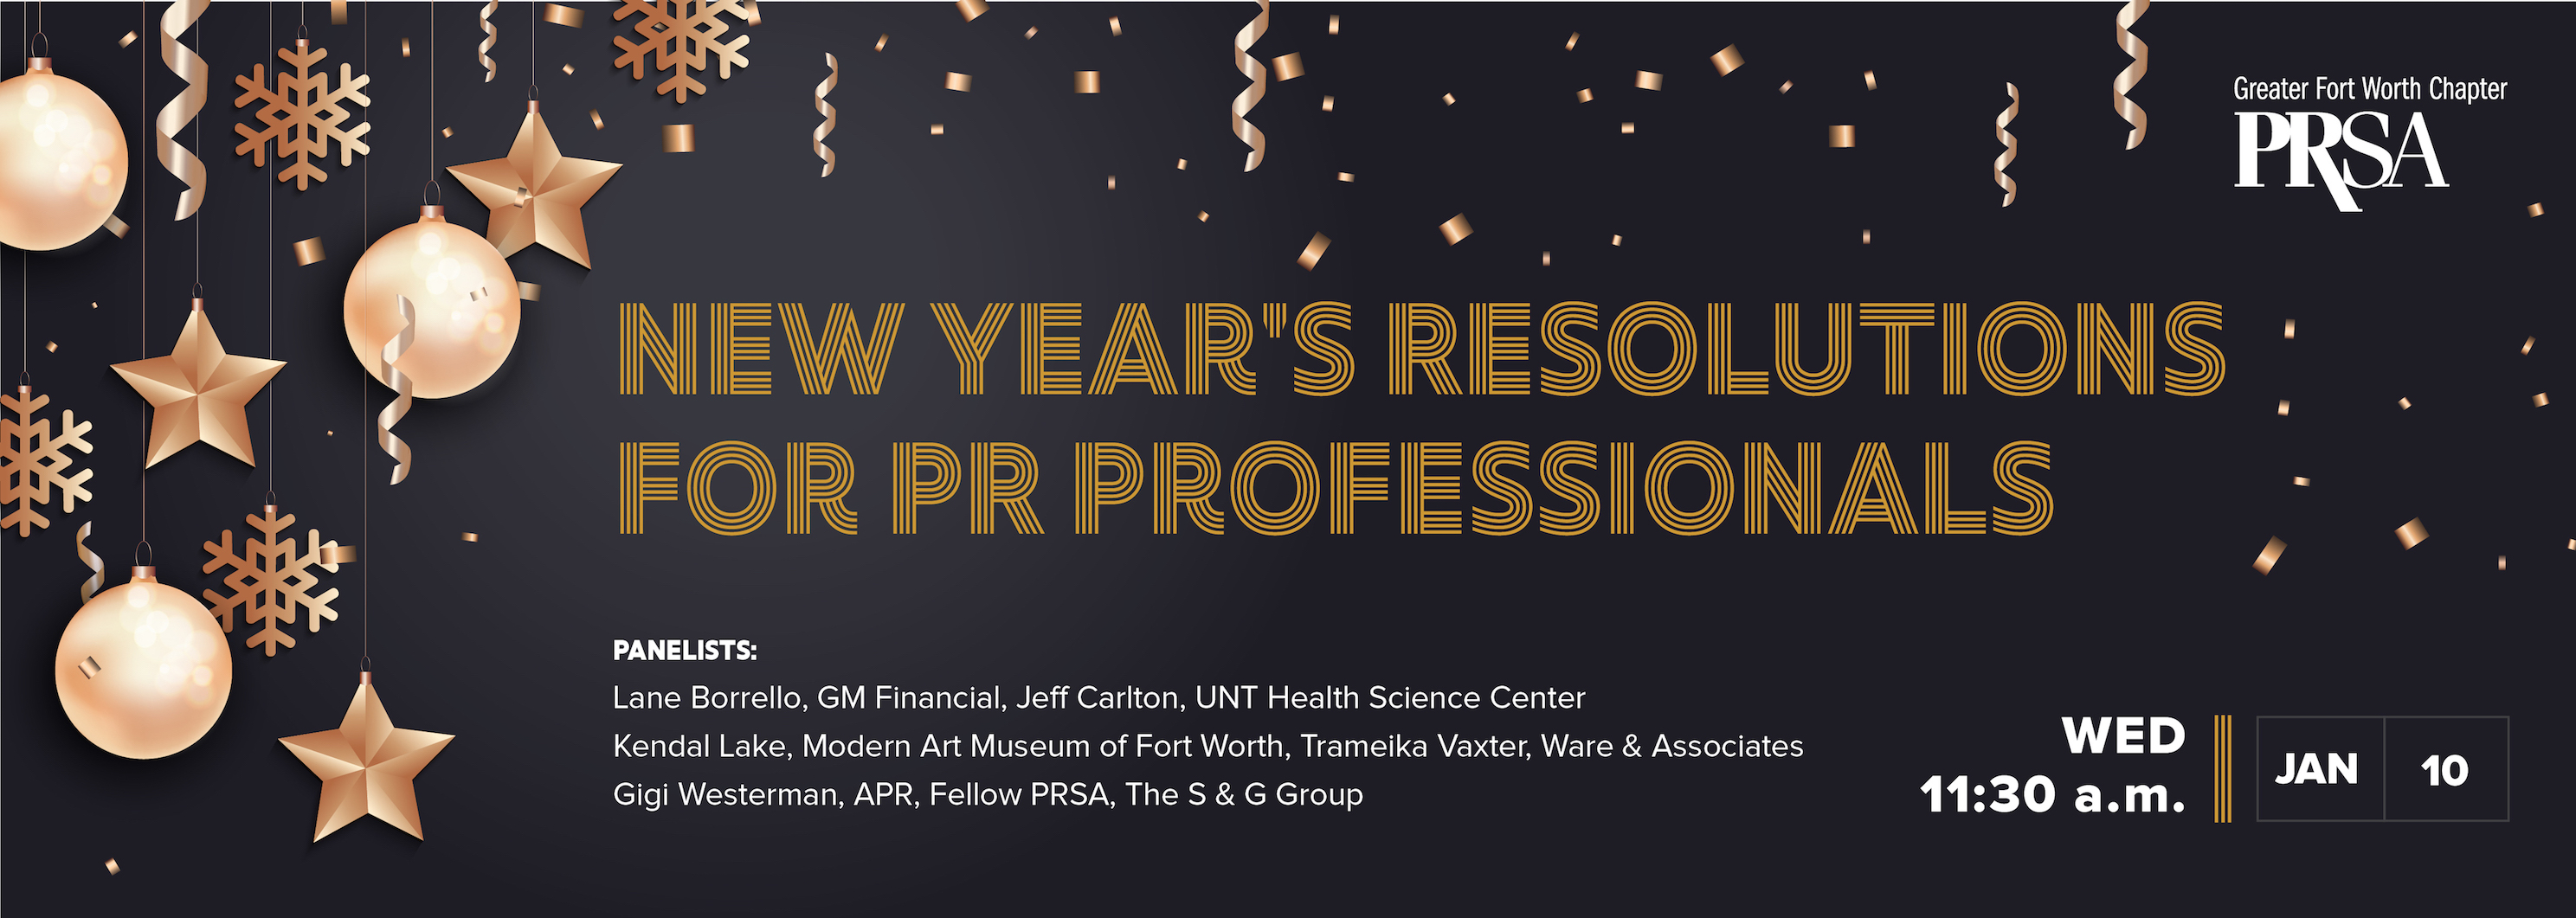 New Year's Resolutions for PR Professionals